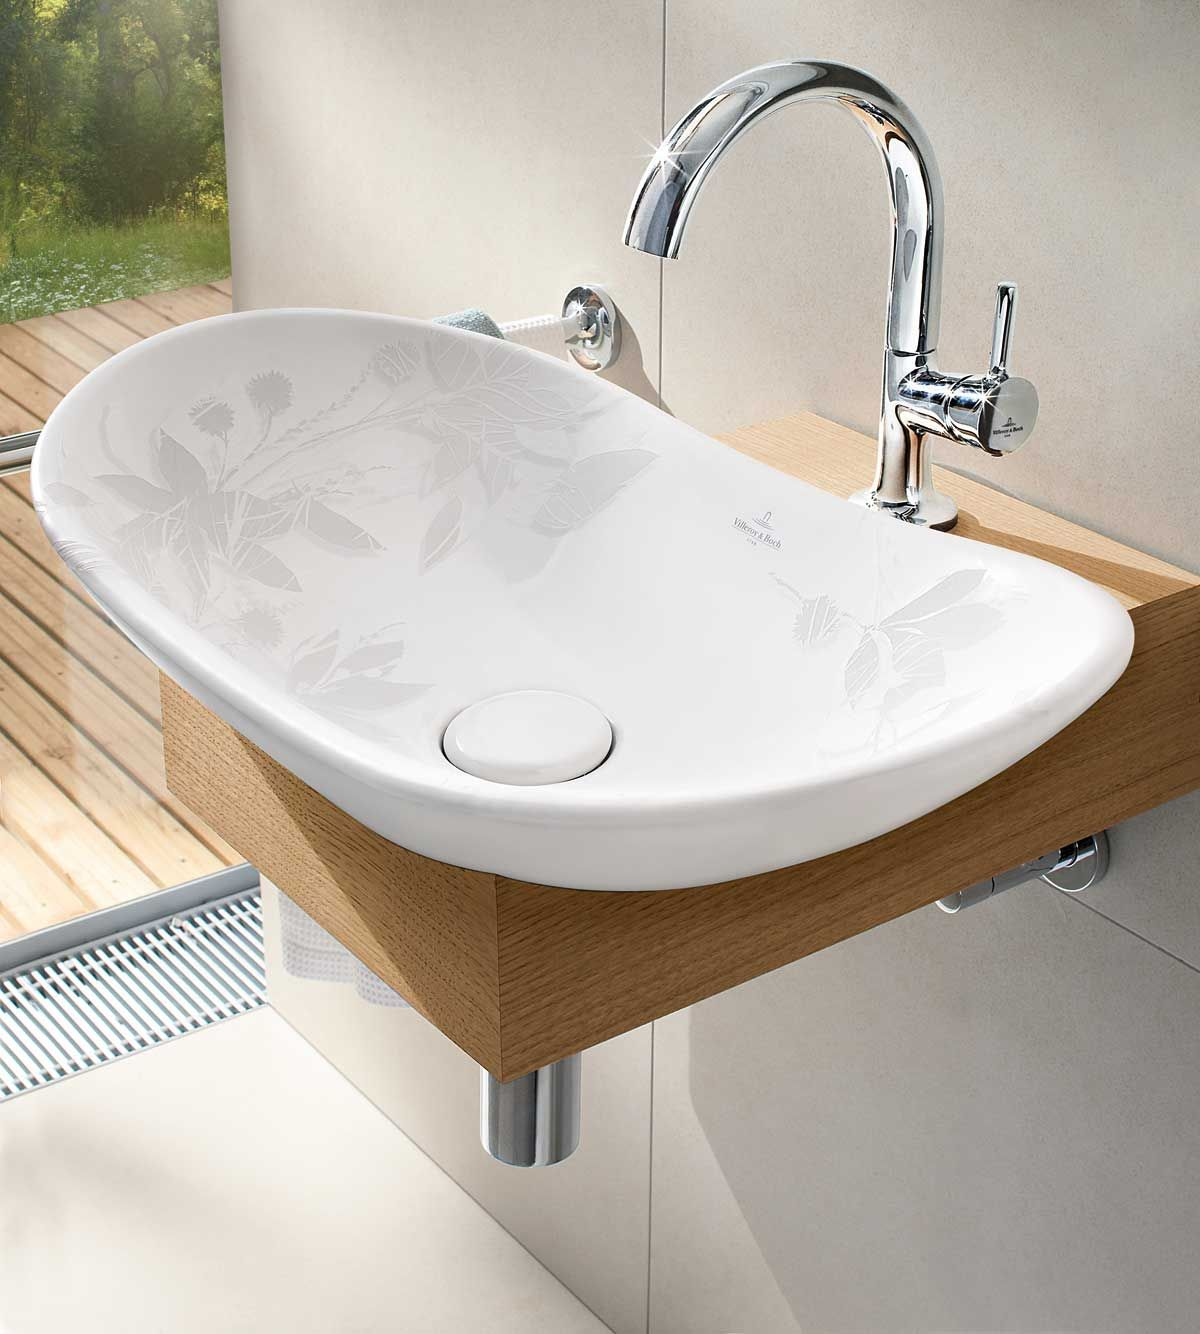 Villeroy and boch bathroom sink -  My Nature Basin By Villeroy Boch Welcomes Nature Into Your Bathrooms The Inside Of The Basin Has Image Of Chestnut Leaves And Blossoms